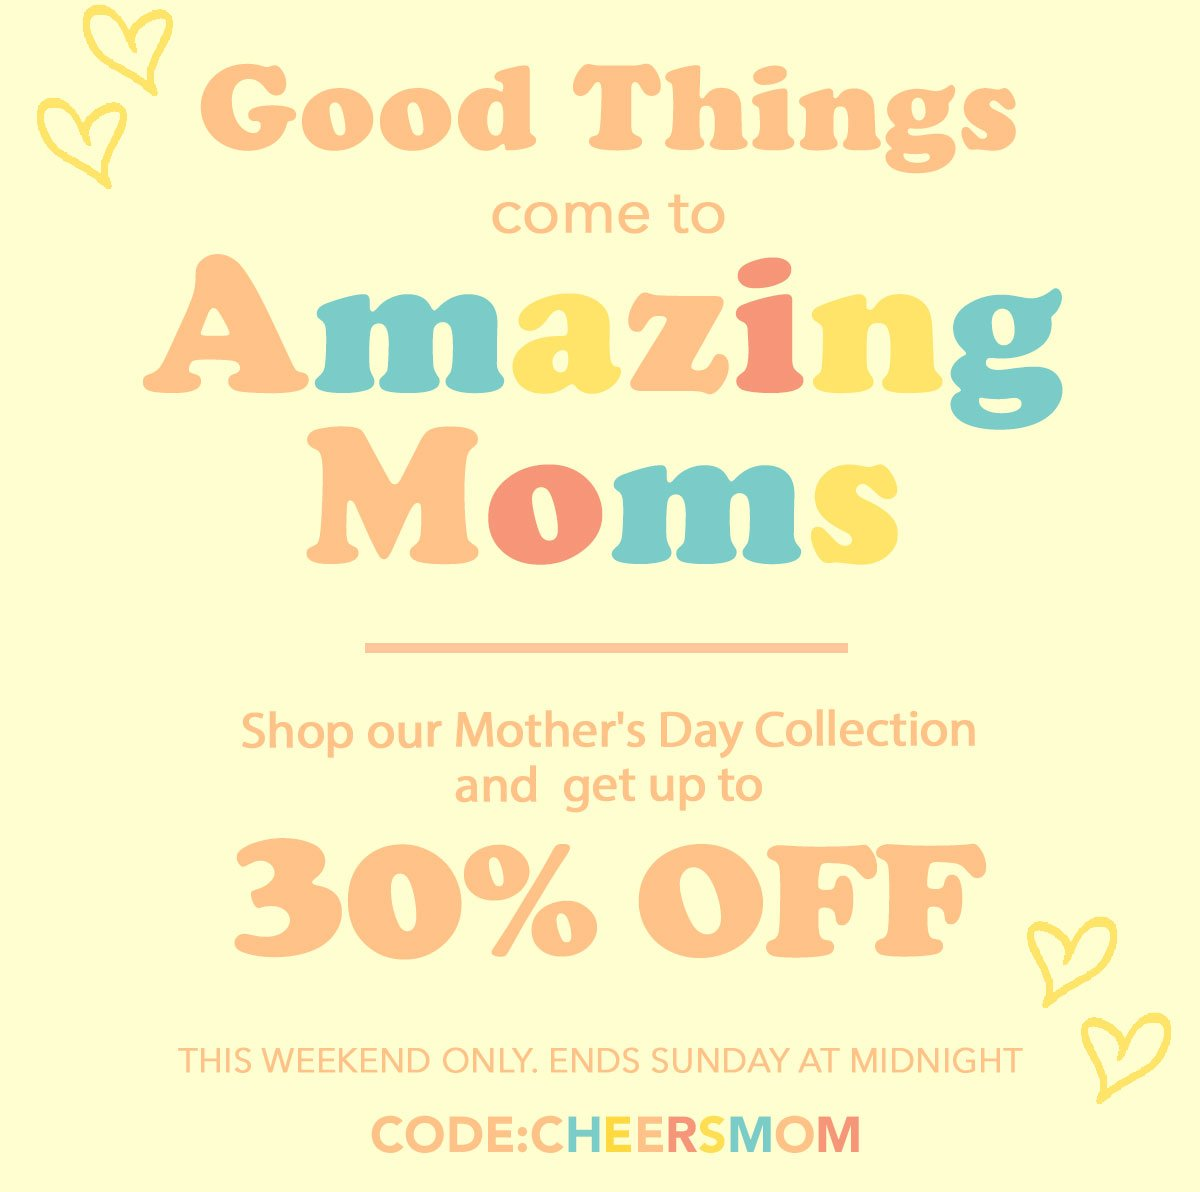 30% off Mother's Day Collection with Code: CHEERSMOM